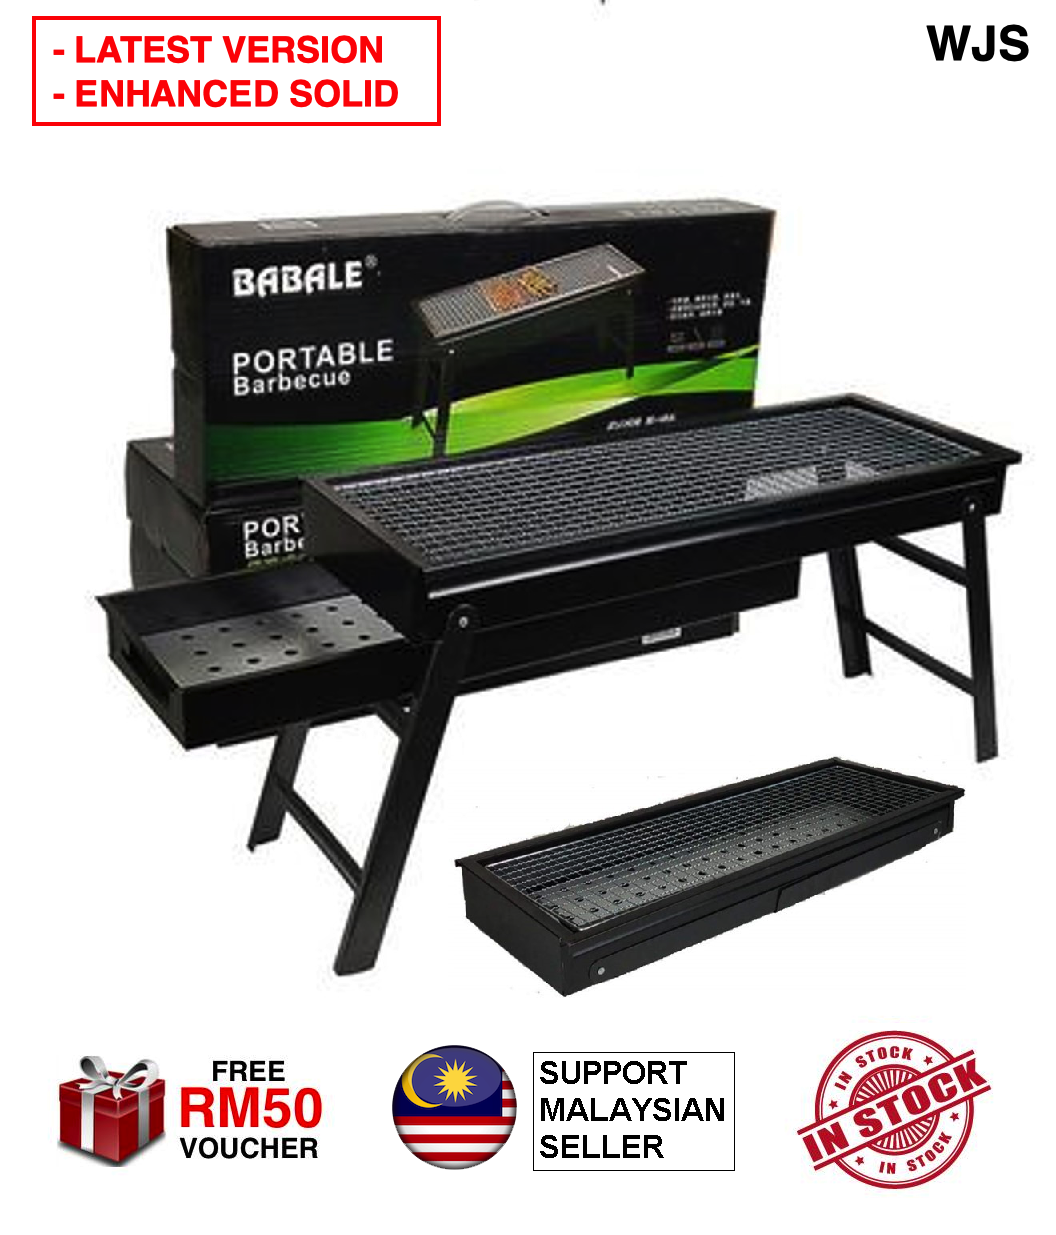 (ENHANCED SOLID) WJS Latest Version Enhanced Portable BBQ Grill Outdoor Folding Barbecue BBQ Stove Barbecue Stove Meat Cooker Grill Chicken BBQ Rack Babale BBQ Panggang Ayam SOLID BLACK [FREE RM 50 VOUCHER]